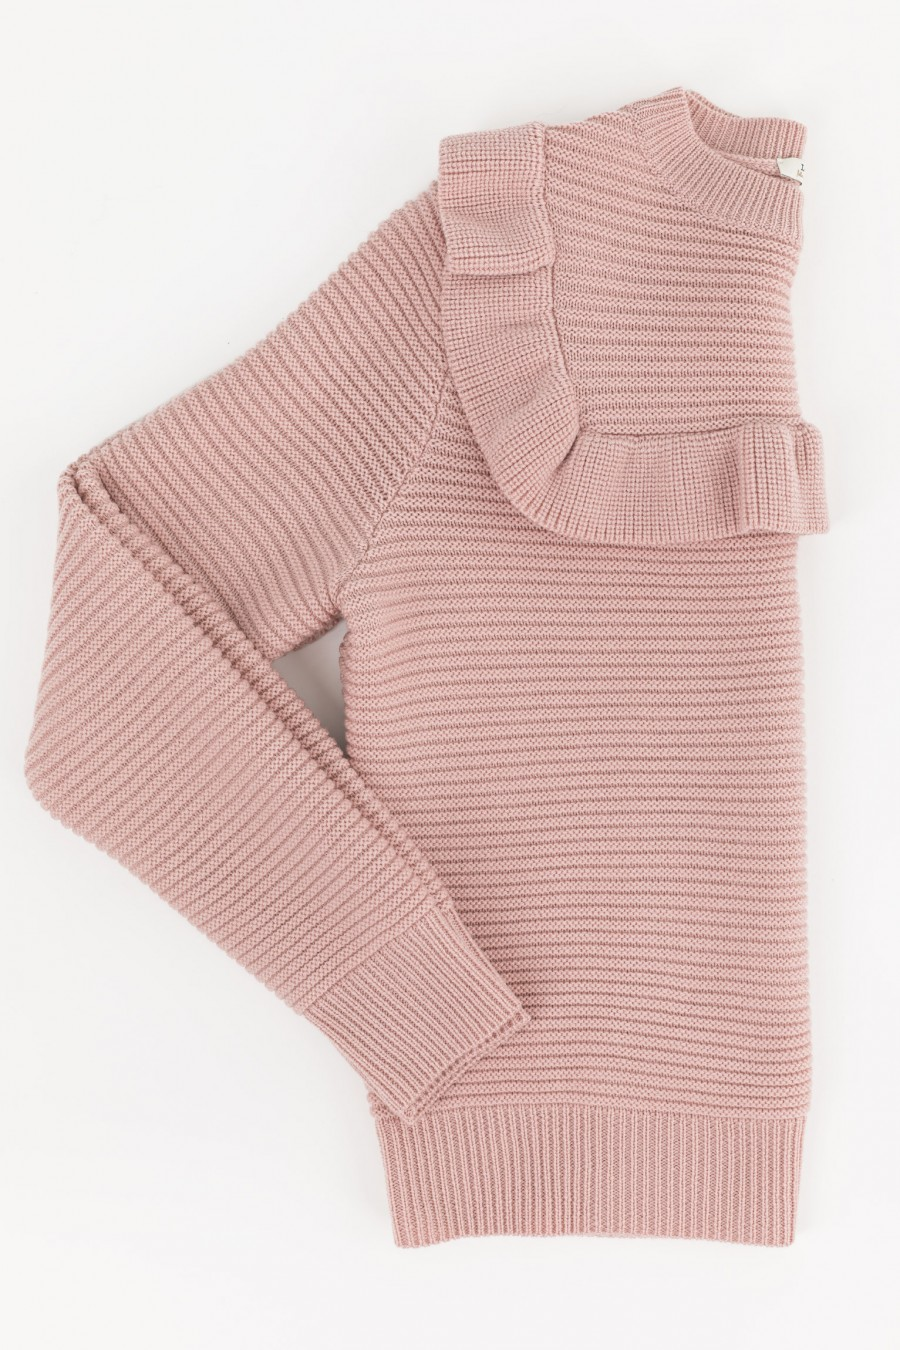 Pink pullover with ruches oh the yoke